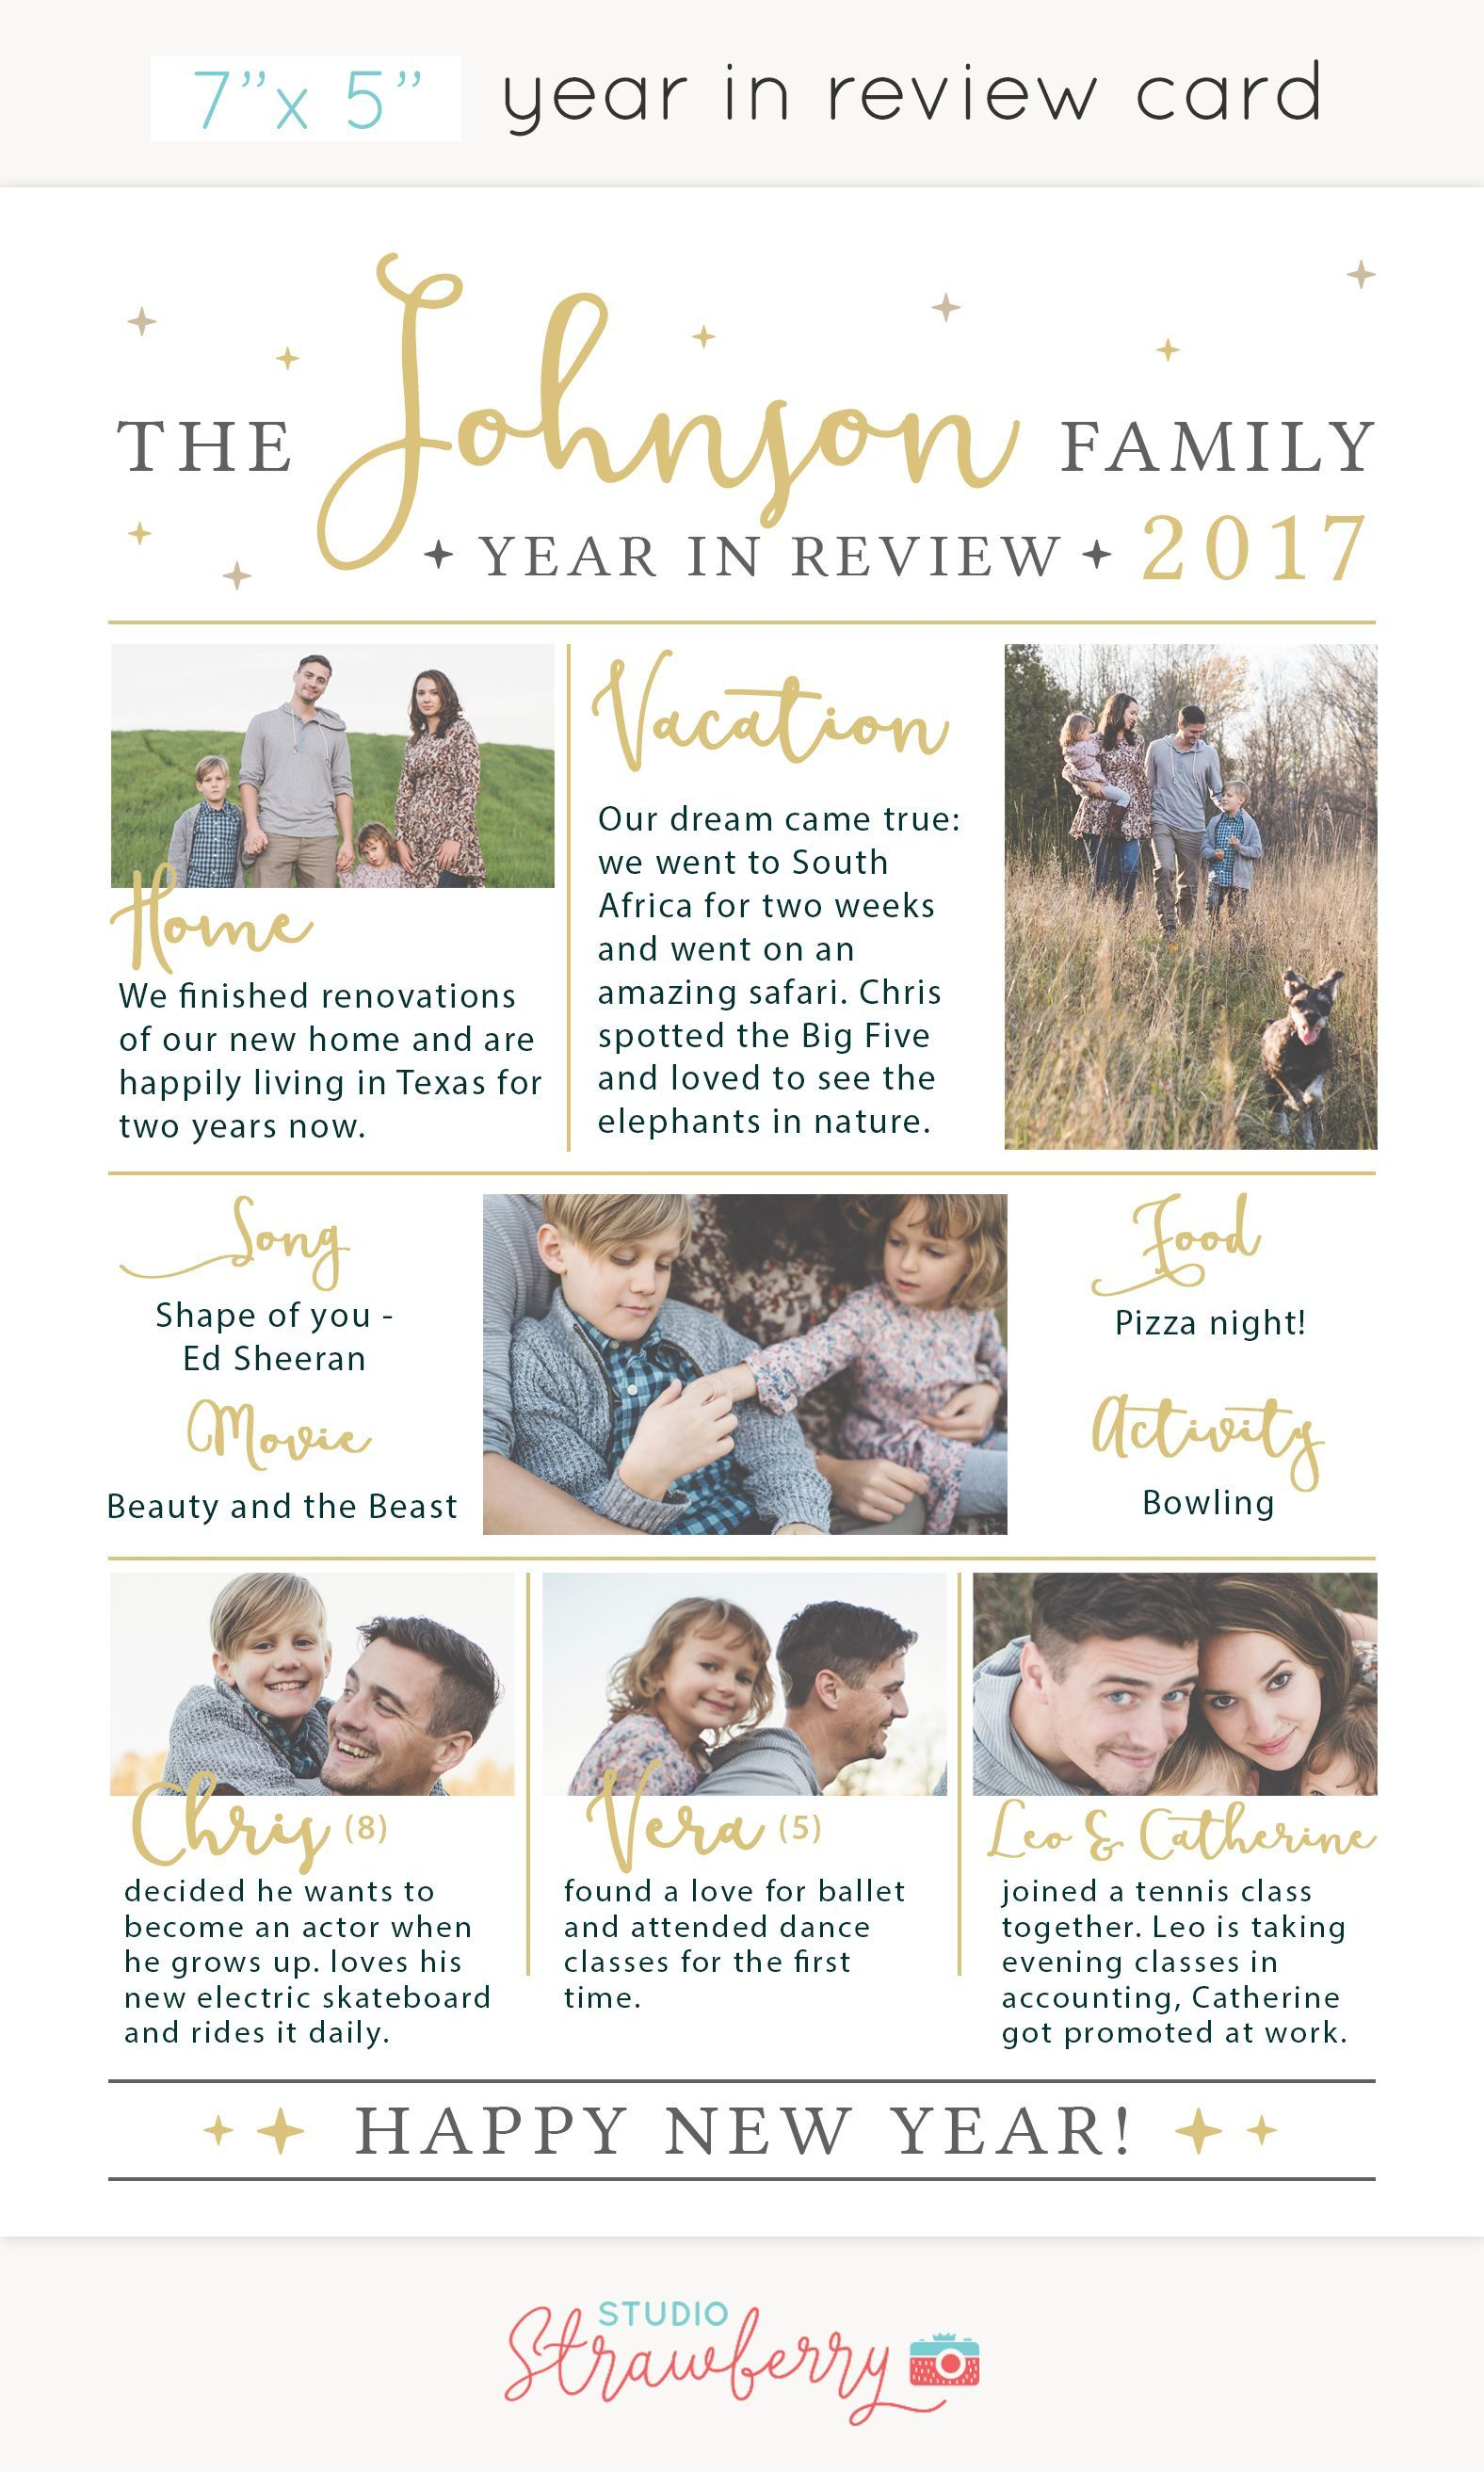 Year In Review Christmas Card Template 2019 Overview Year In Review Template Year In Review Holiday Card Year In Review Card New Year Meninas